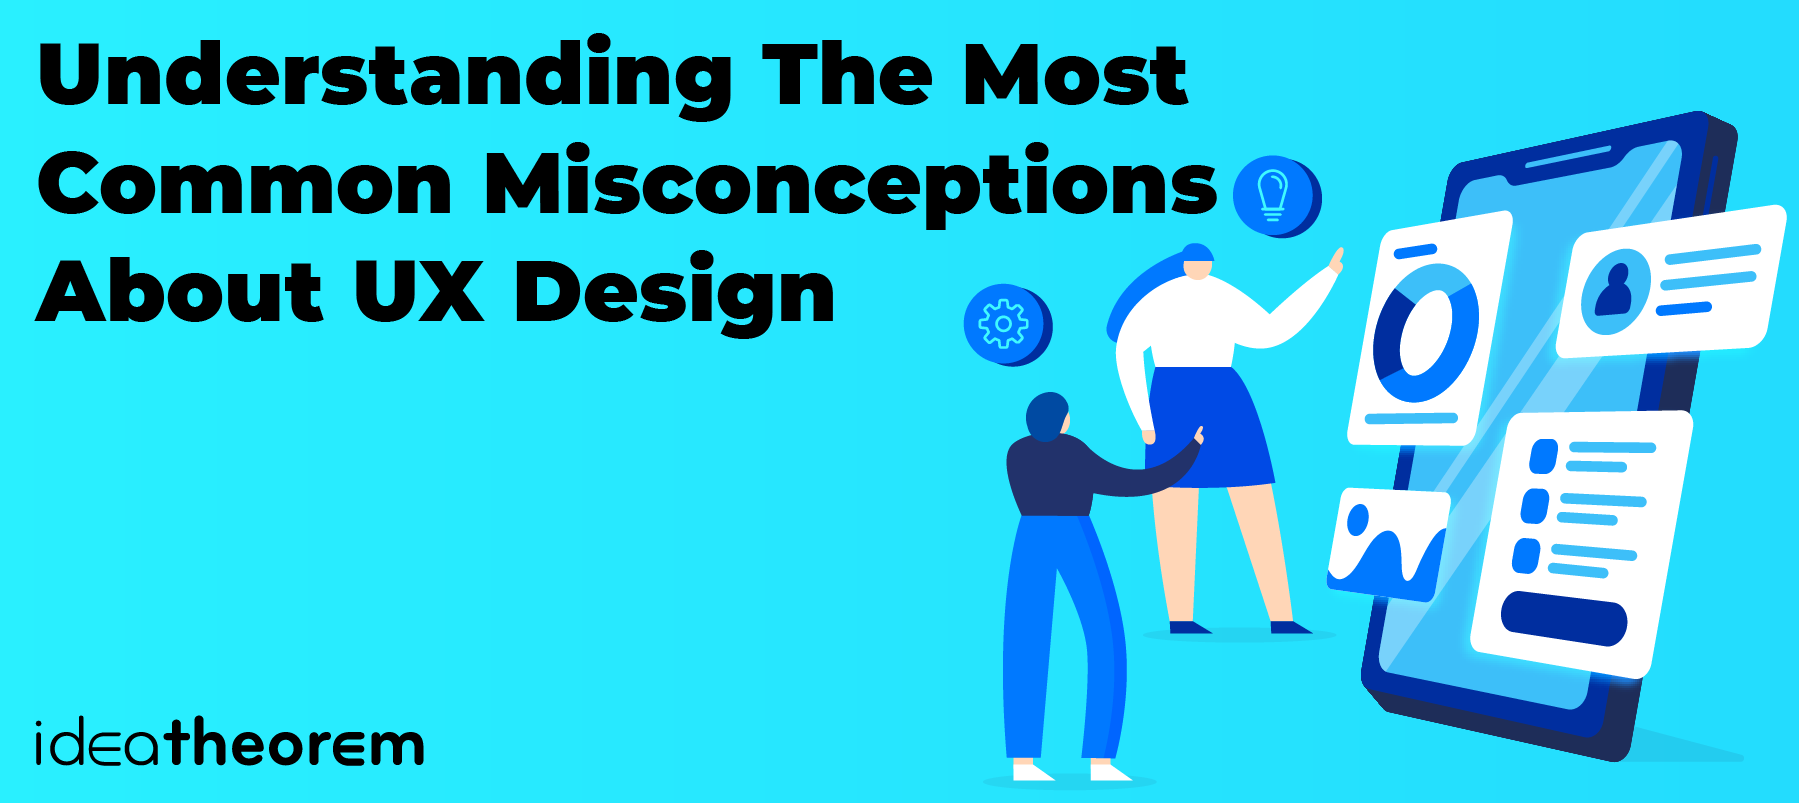 Understanding The Most Common Misconceptions About UX Design